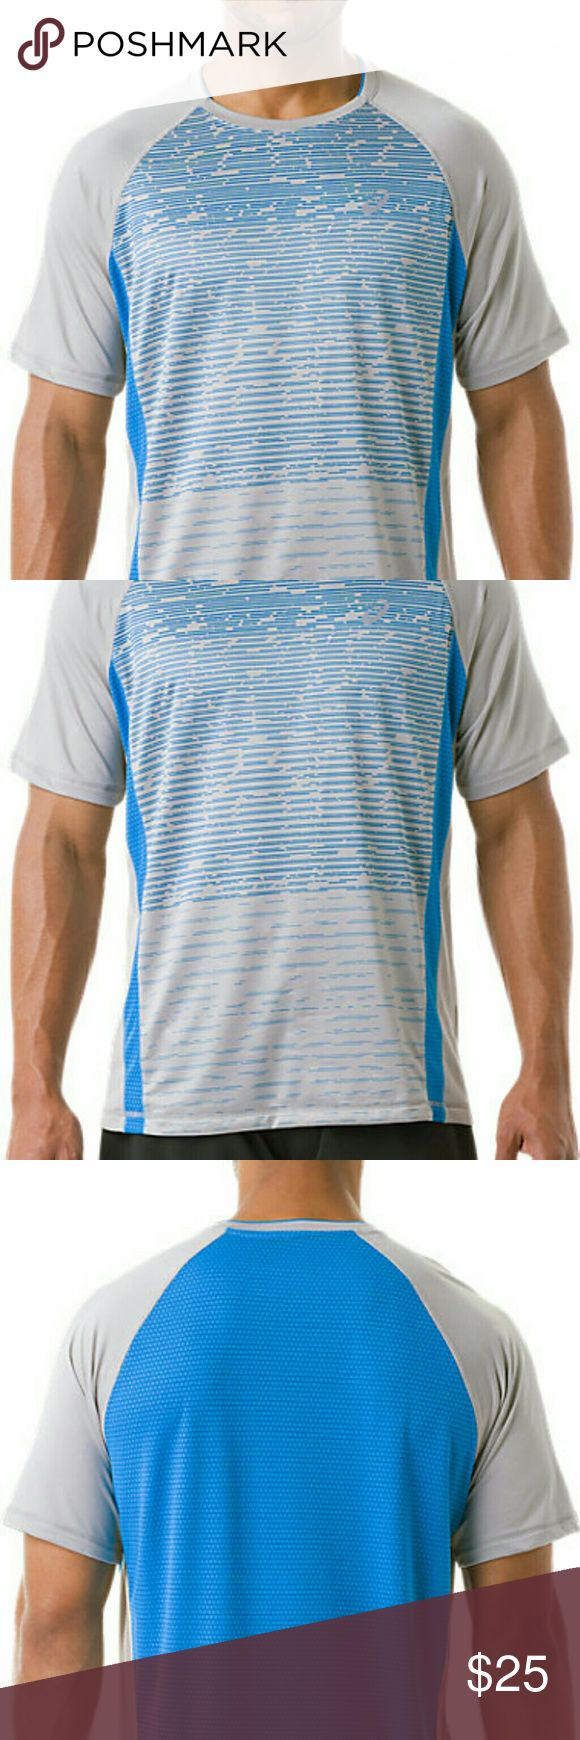 Asics Men's Shori Printed Tee This mens top is great for working out in as it will keep you dry and also looks great to wear as a casual top too! Asics Shirts Tees - Short Sleeve